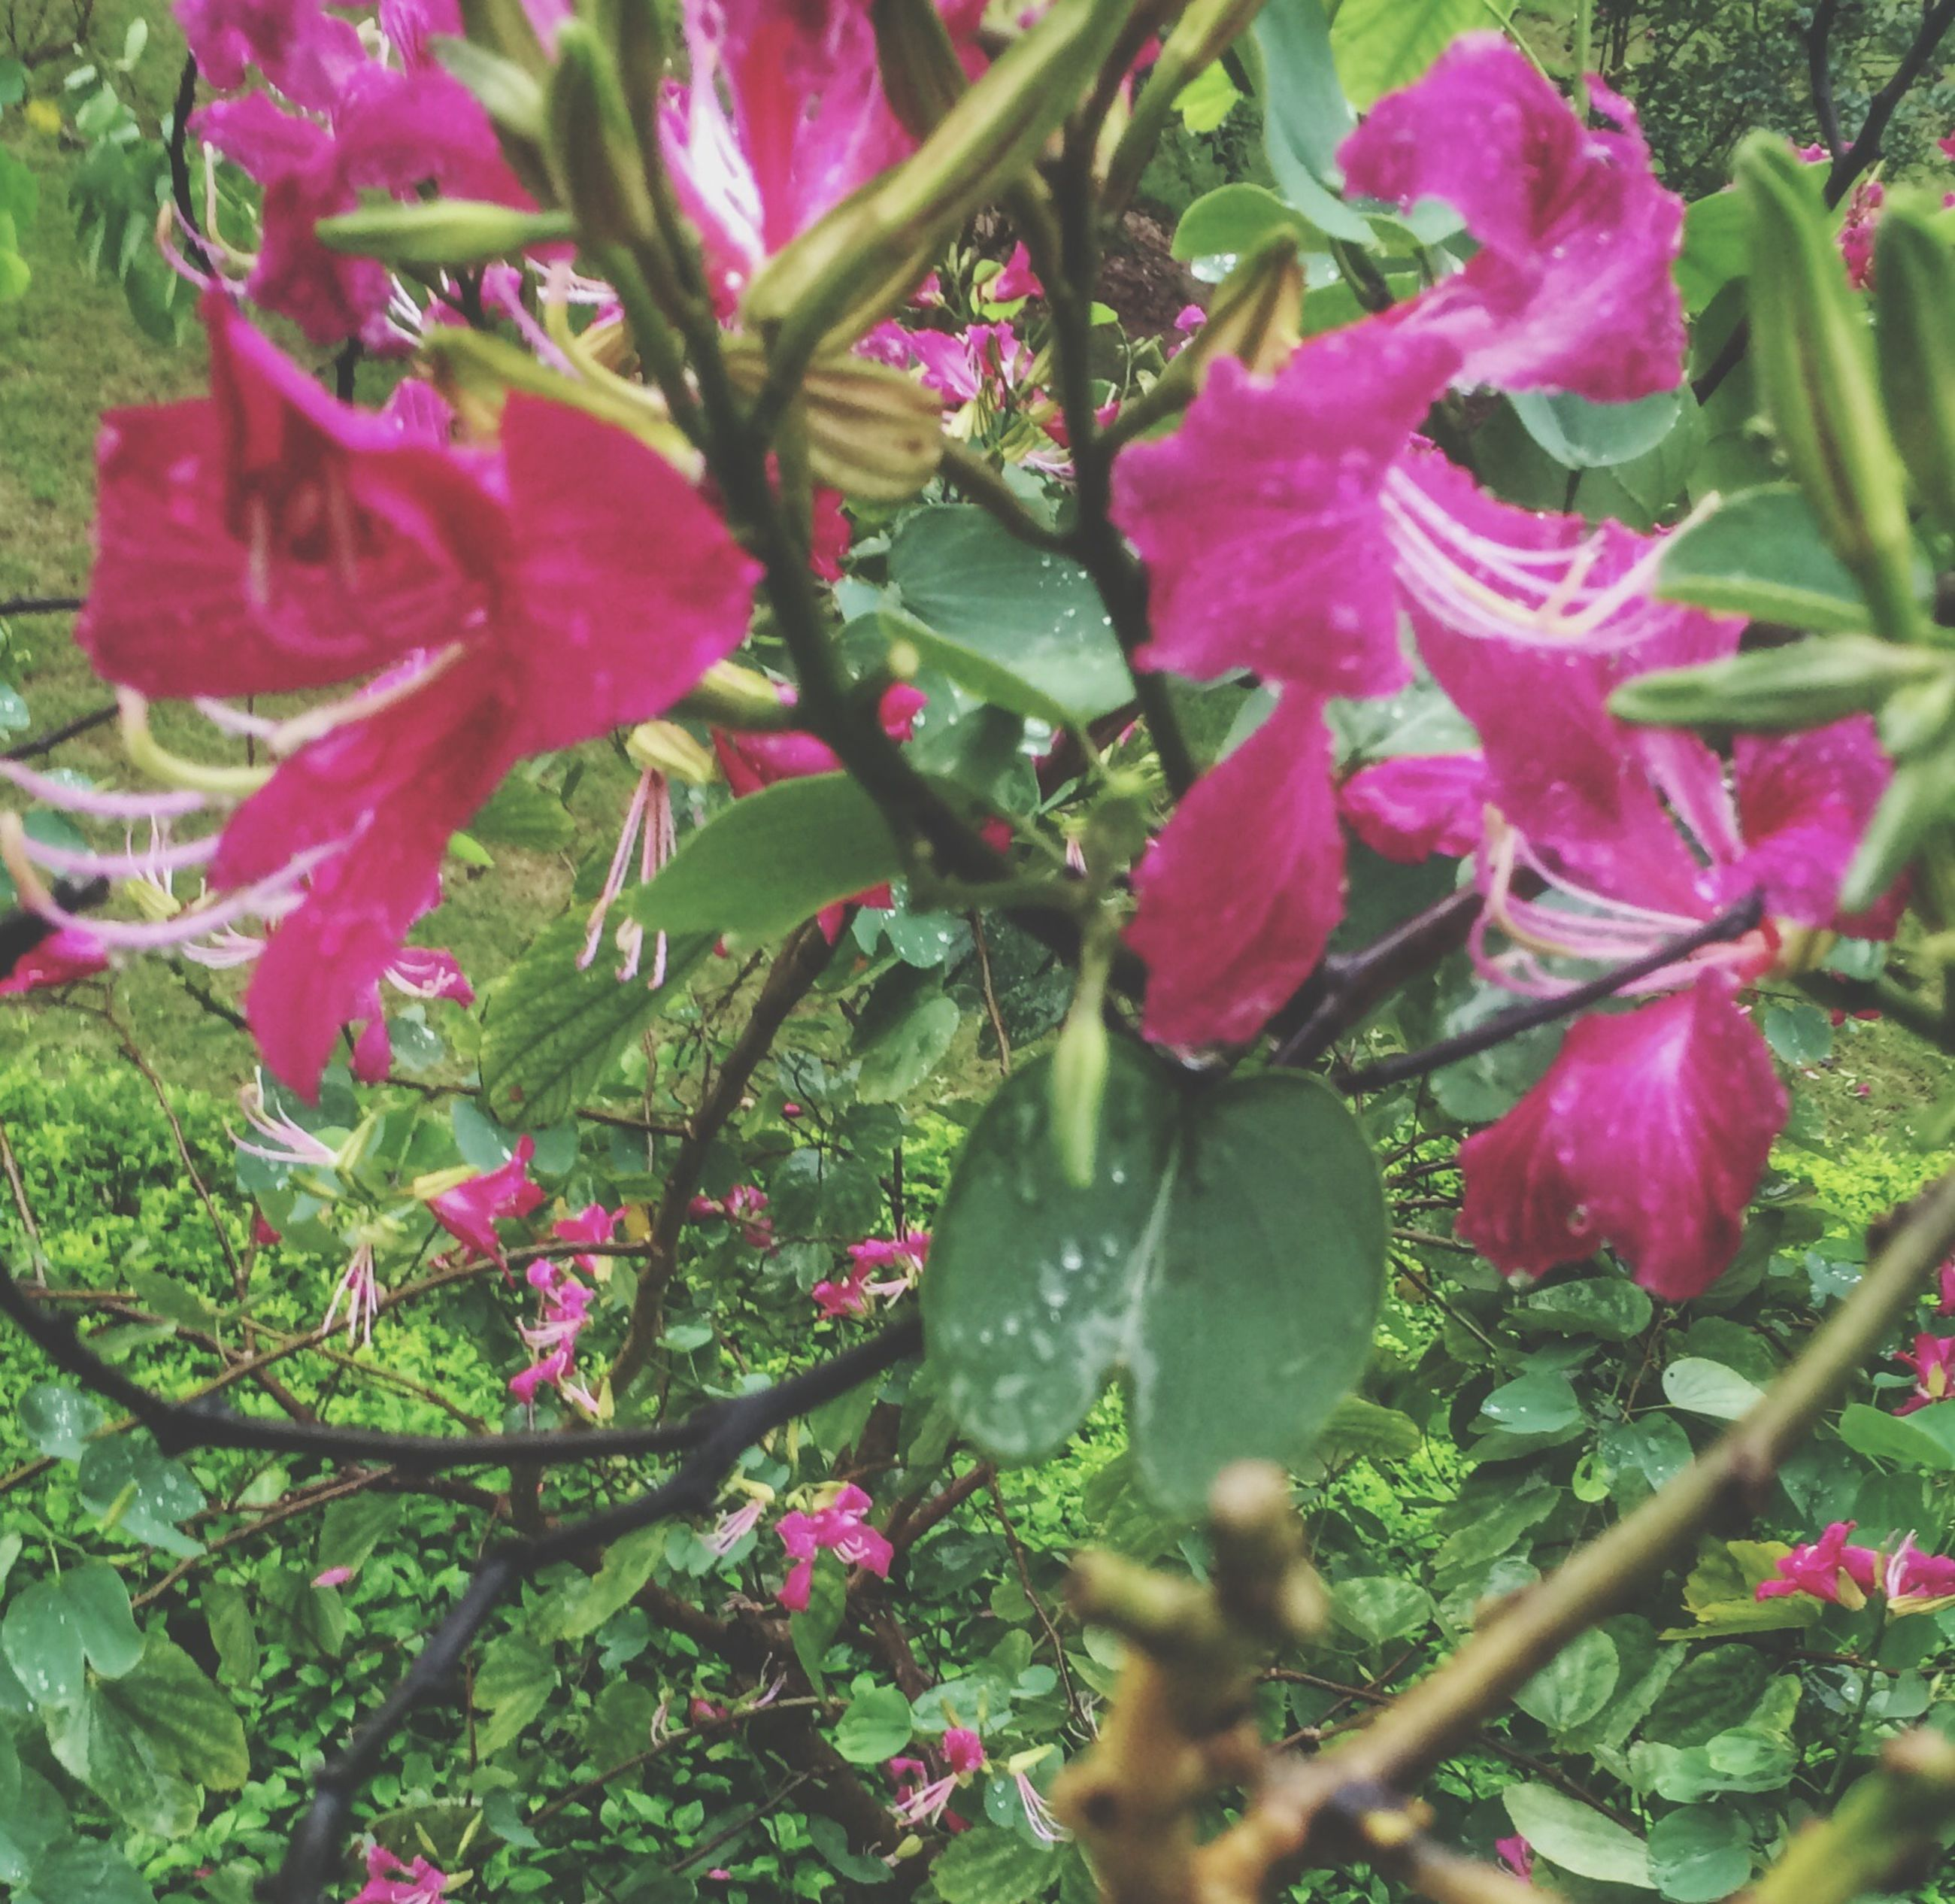 flower, freshness, growth, pink color, fragility, beauty in nature, petal, nature, leaf, plant, blooming, close-up, focus on foreground, flower head, in bloom, branch, day, park - man made space, outdoors, pink